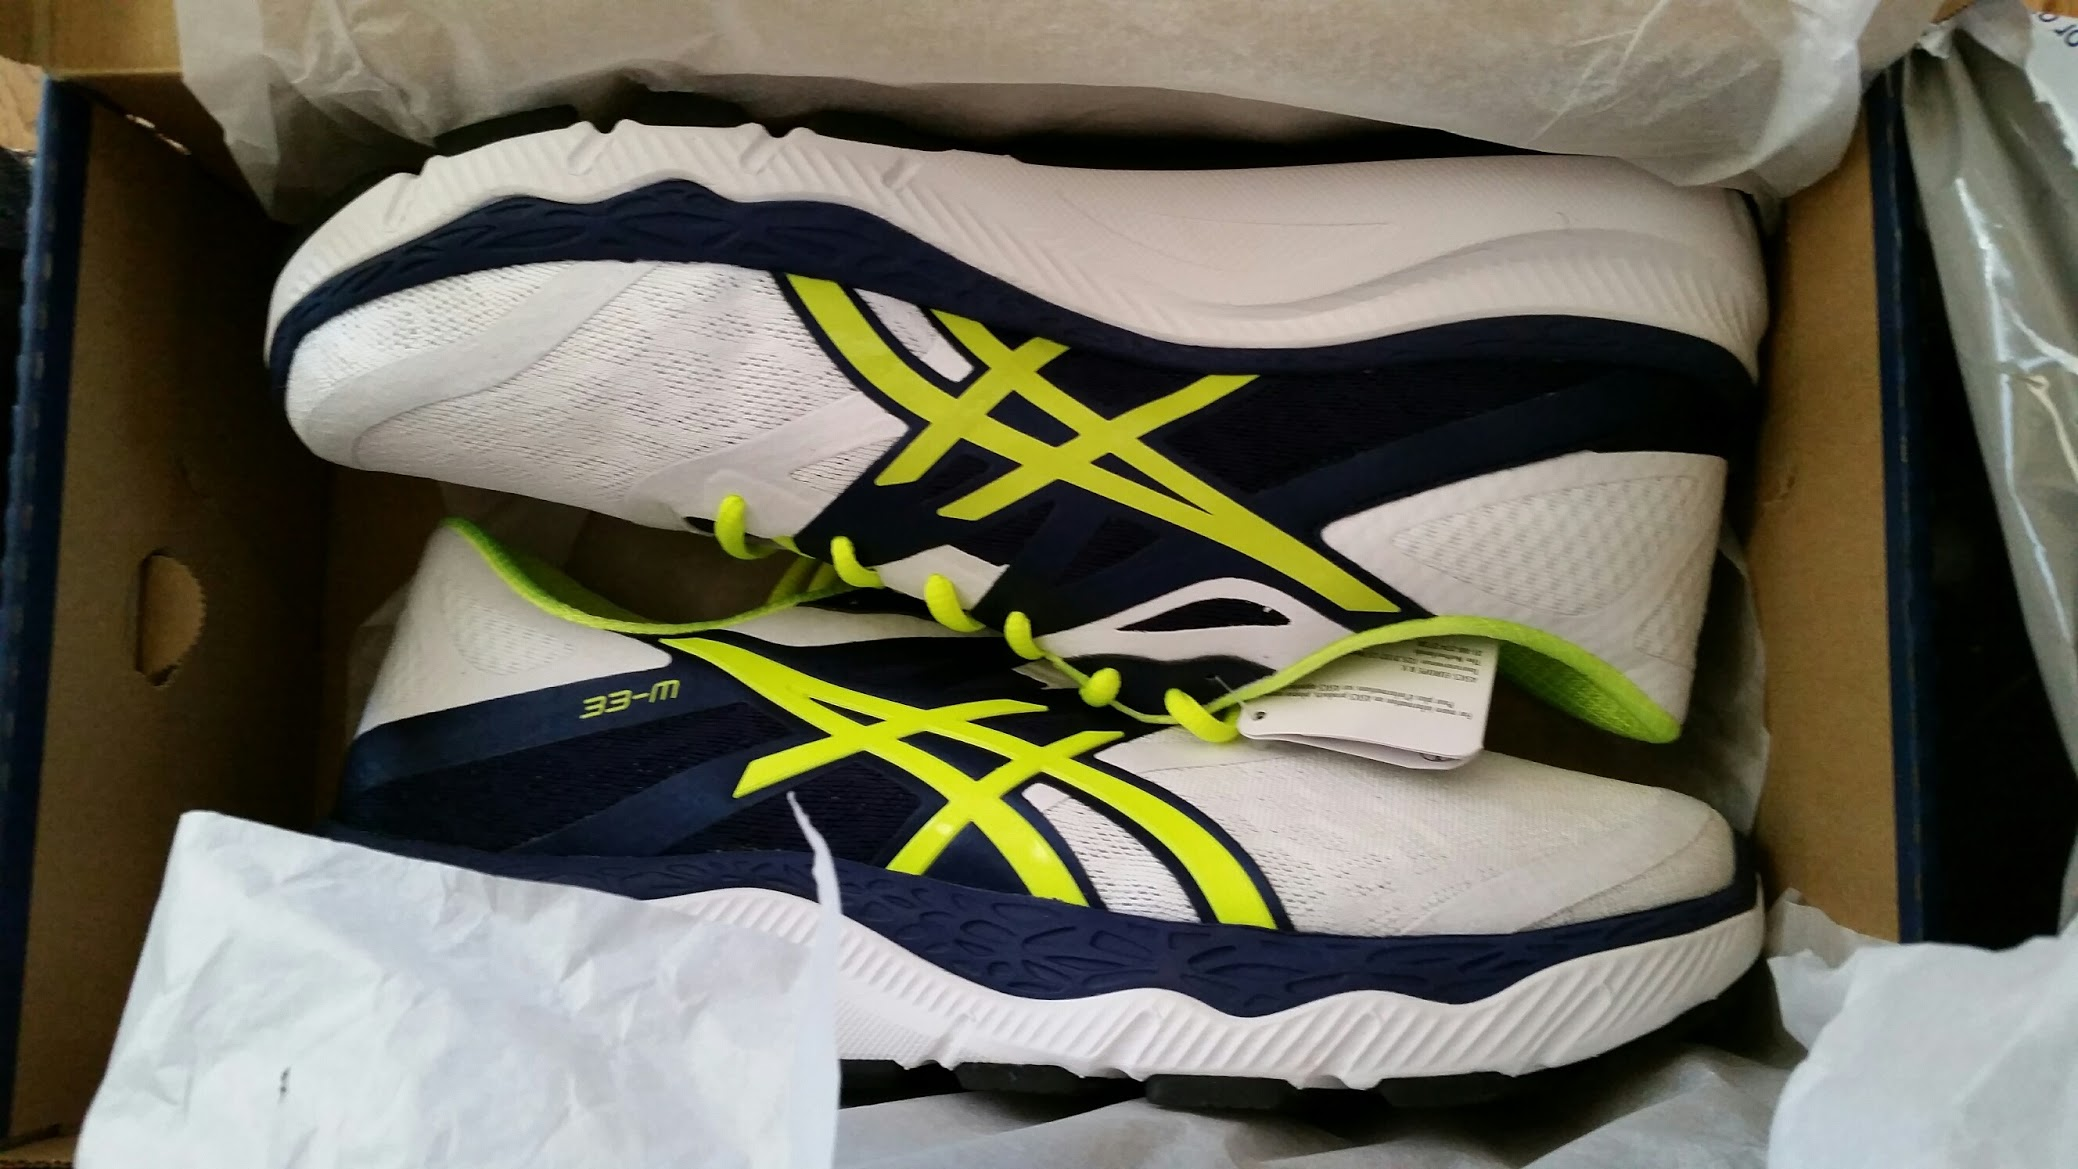 asics shoes 33 millimeters equals how many inches in a meter 646